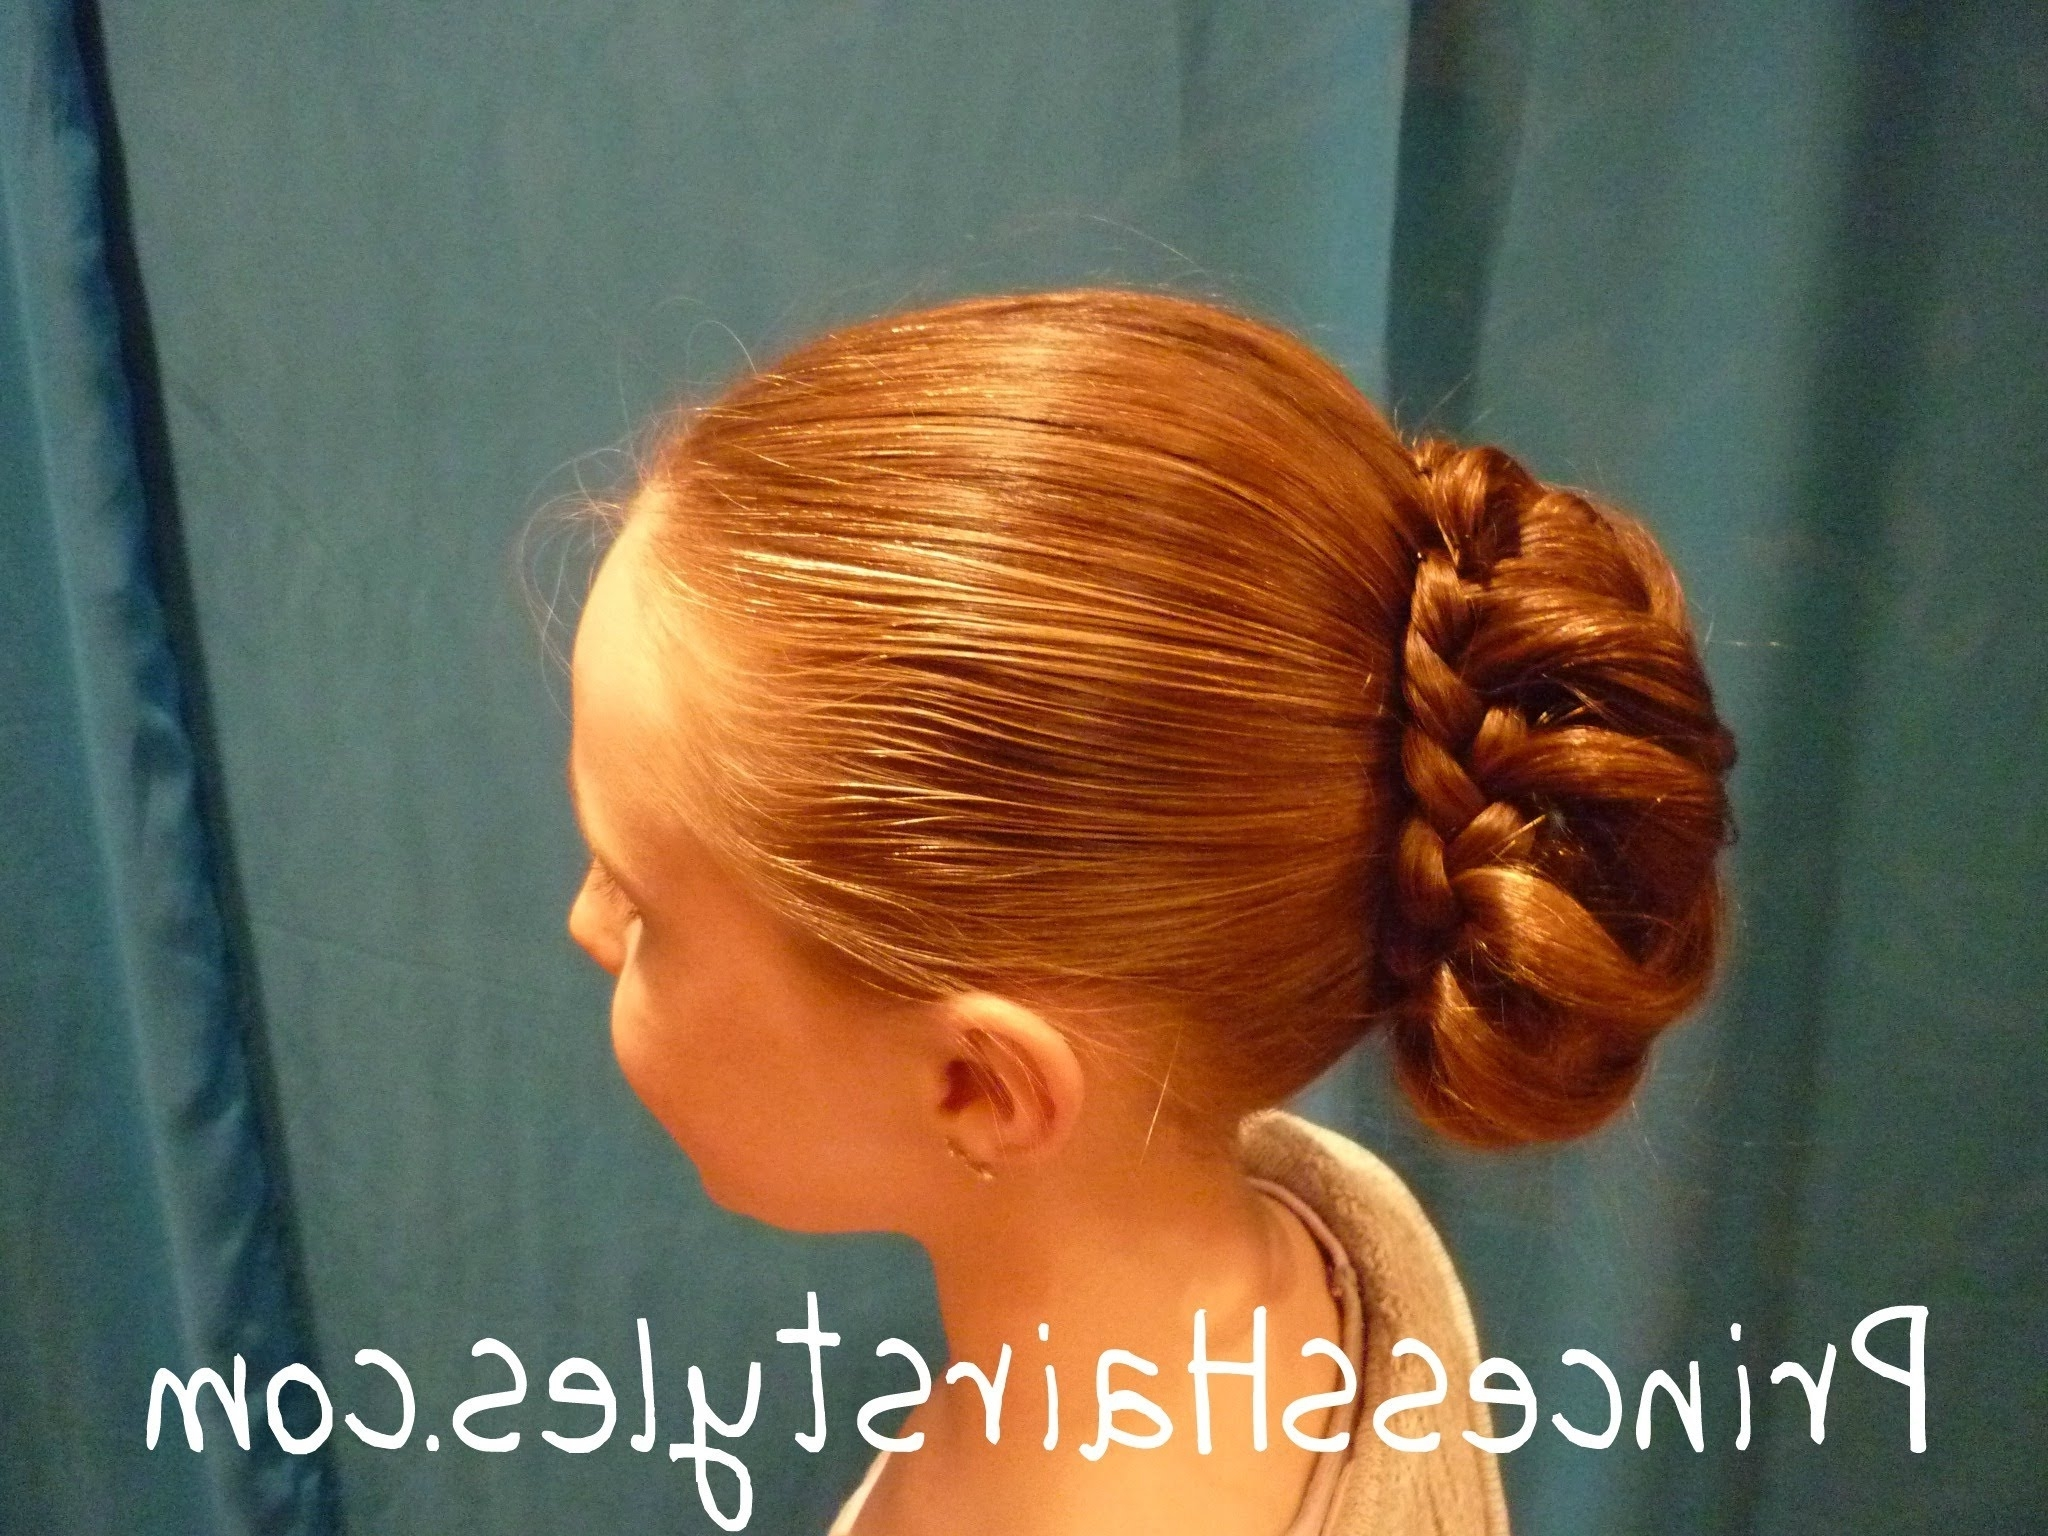 Braid Wrapped Bun – Updo Chignon Hairstyles – Youtube Within Current Braided Hairstyles For Dance Recitals (View 5 of 15)